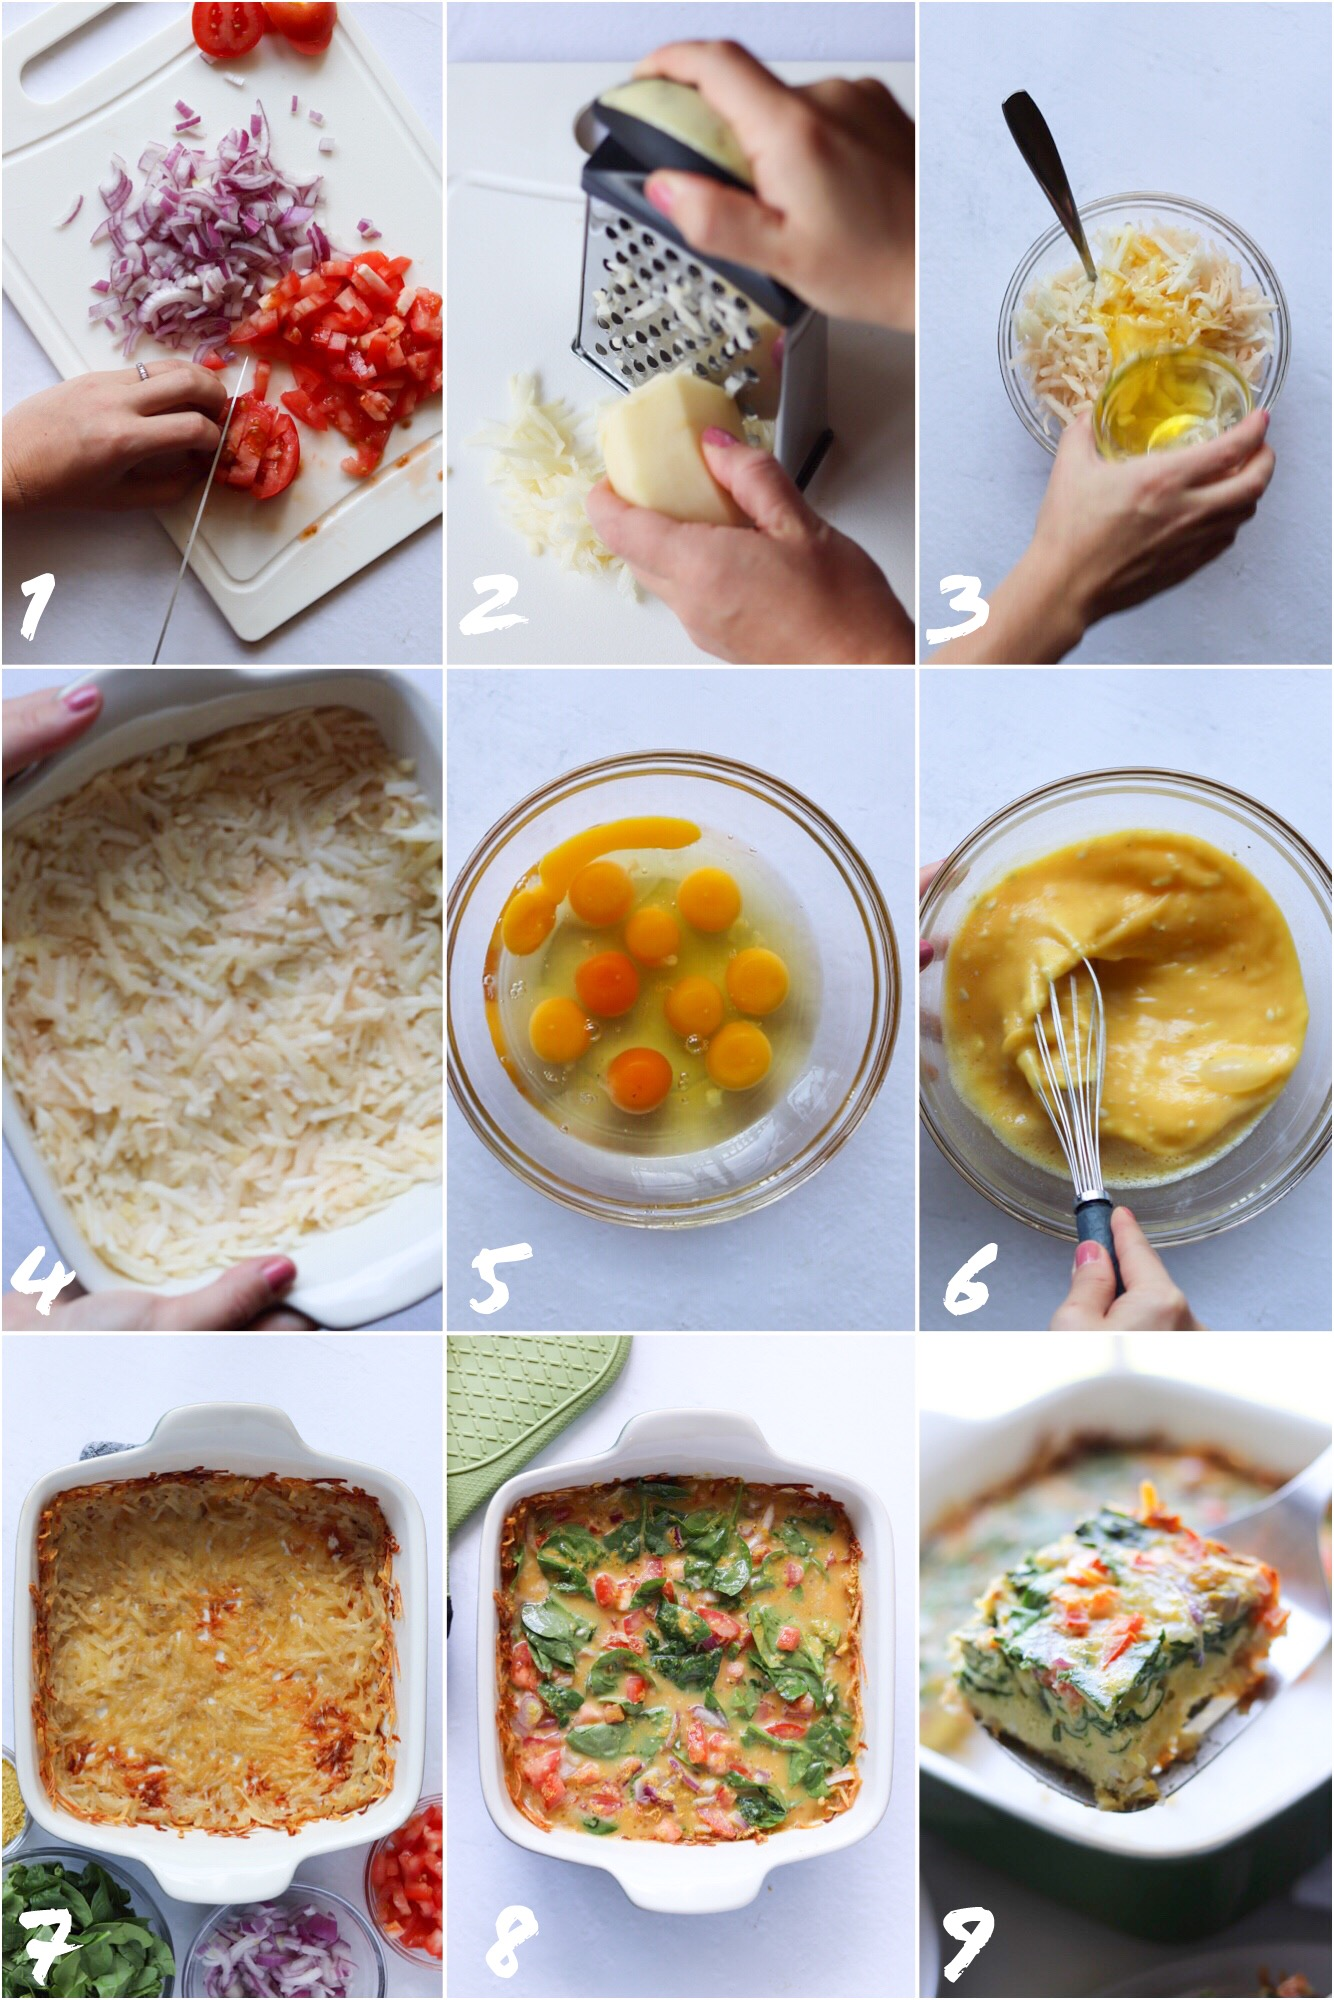 Step by Step Collage of photos showing how to make the breakfast casserole: cutting the vegetables and grating the potato, mixing the ghee and potatoes and pressing them into the baking dish, whisking the eggs, adding all the ingredients on top of the cooked crust, and finally plating the finished dish.